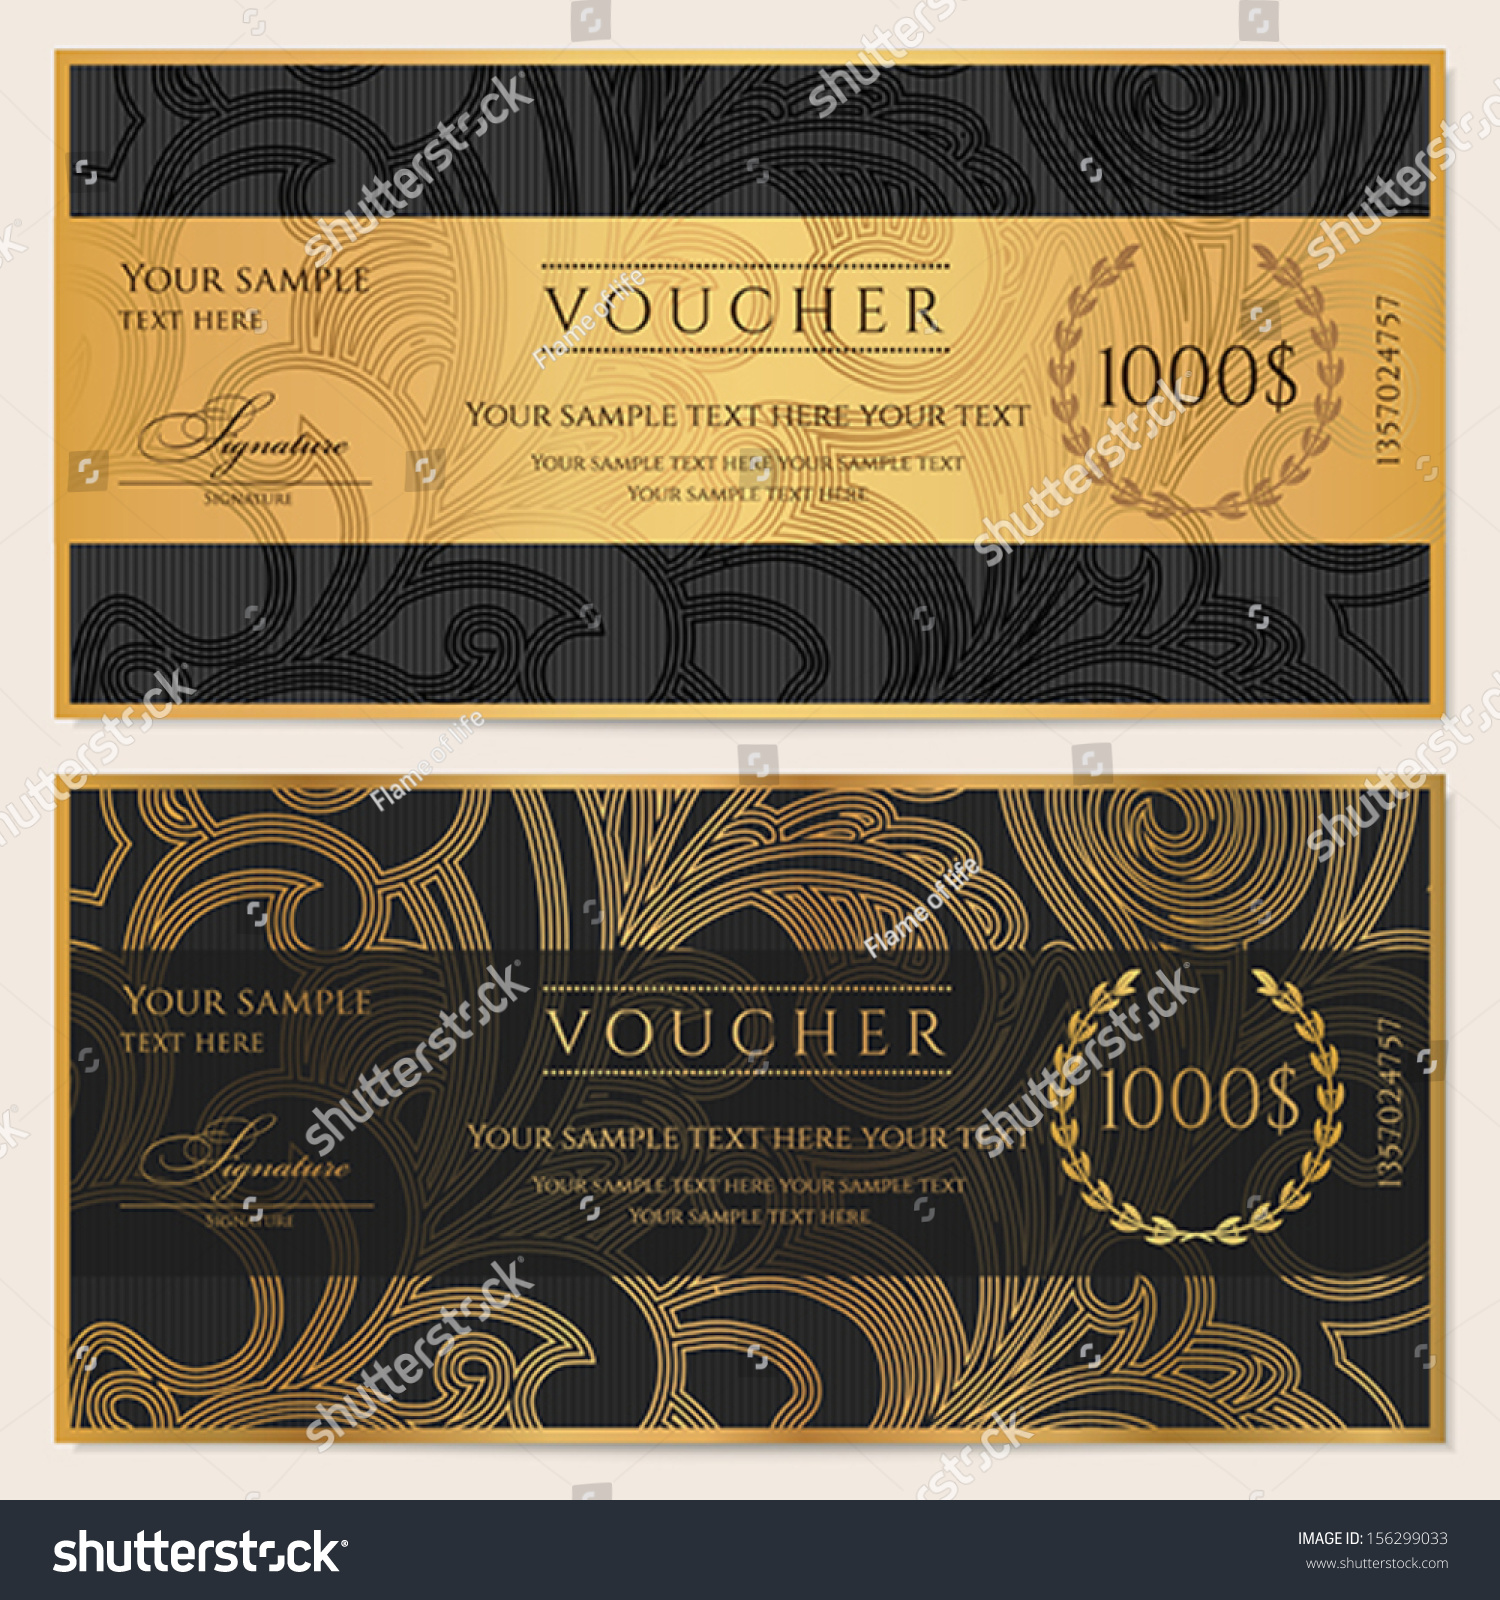 Voucher gift certificate coupon template floral stock for Cheque voucher template